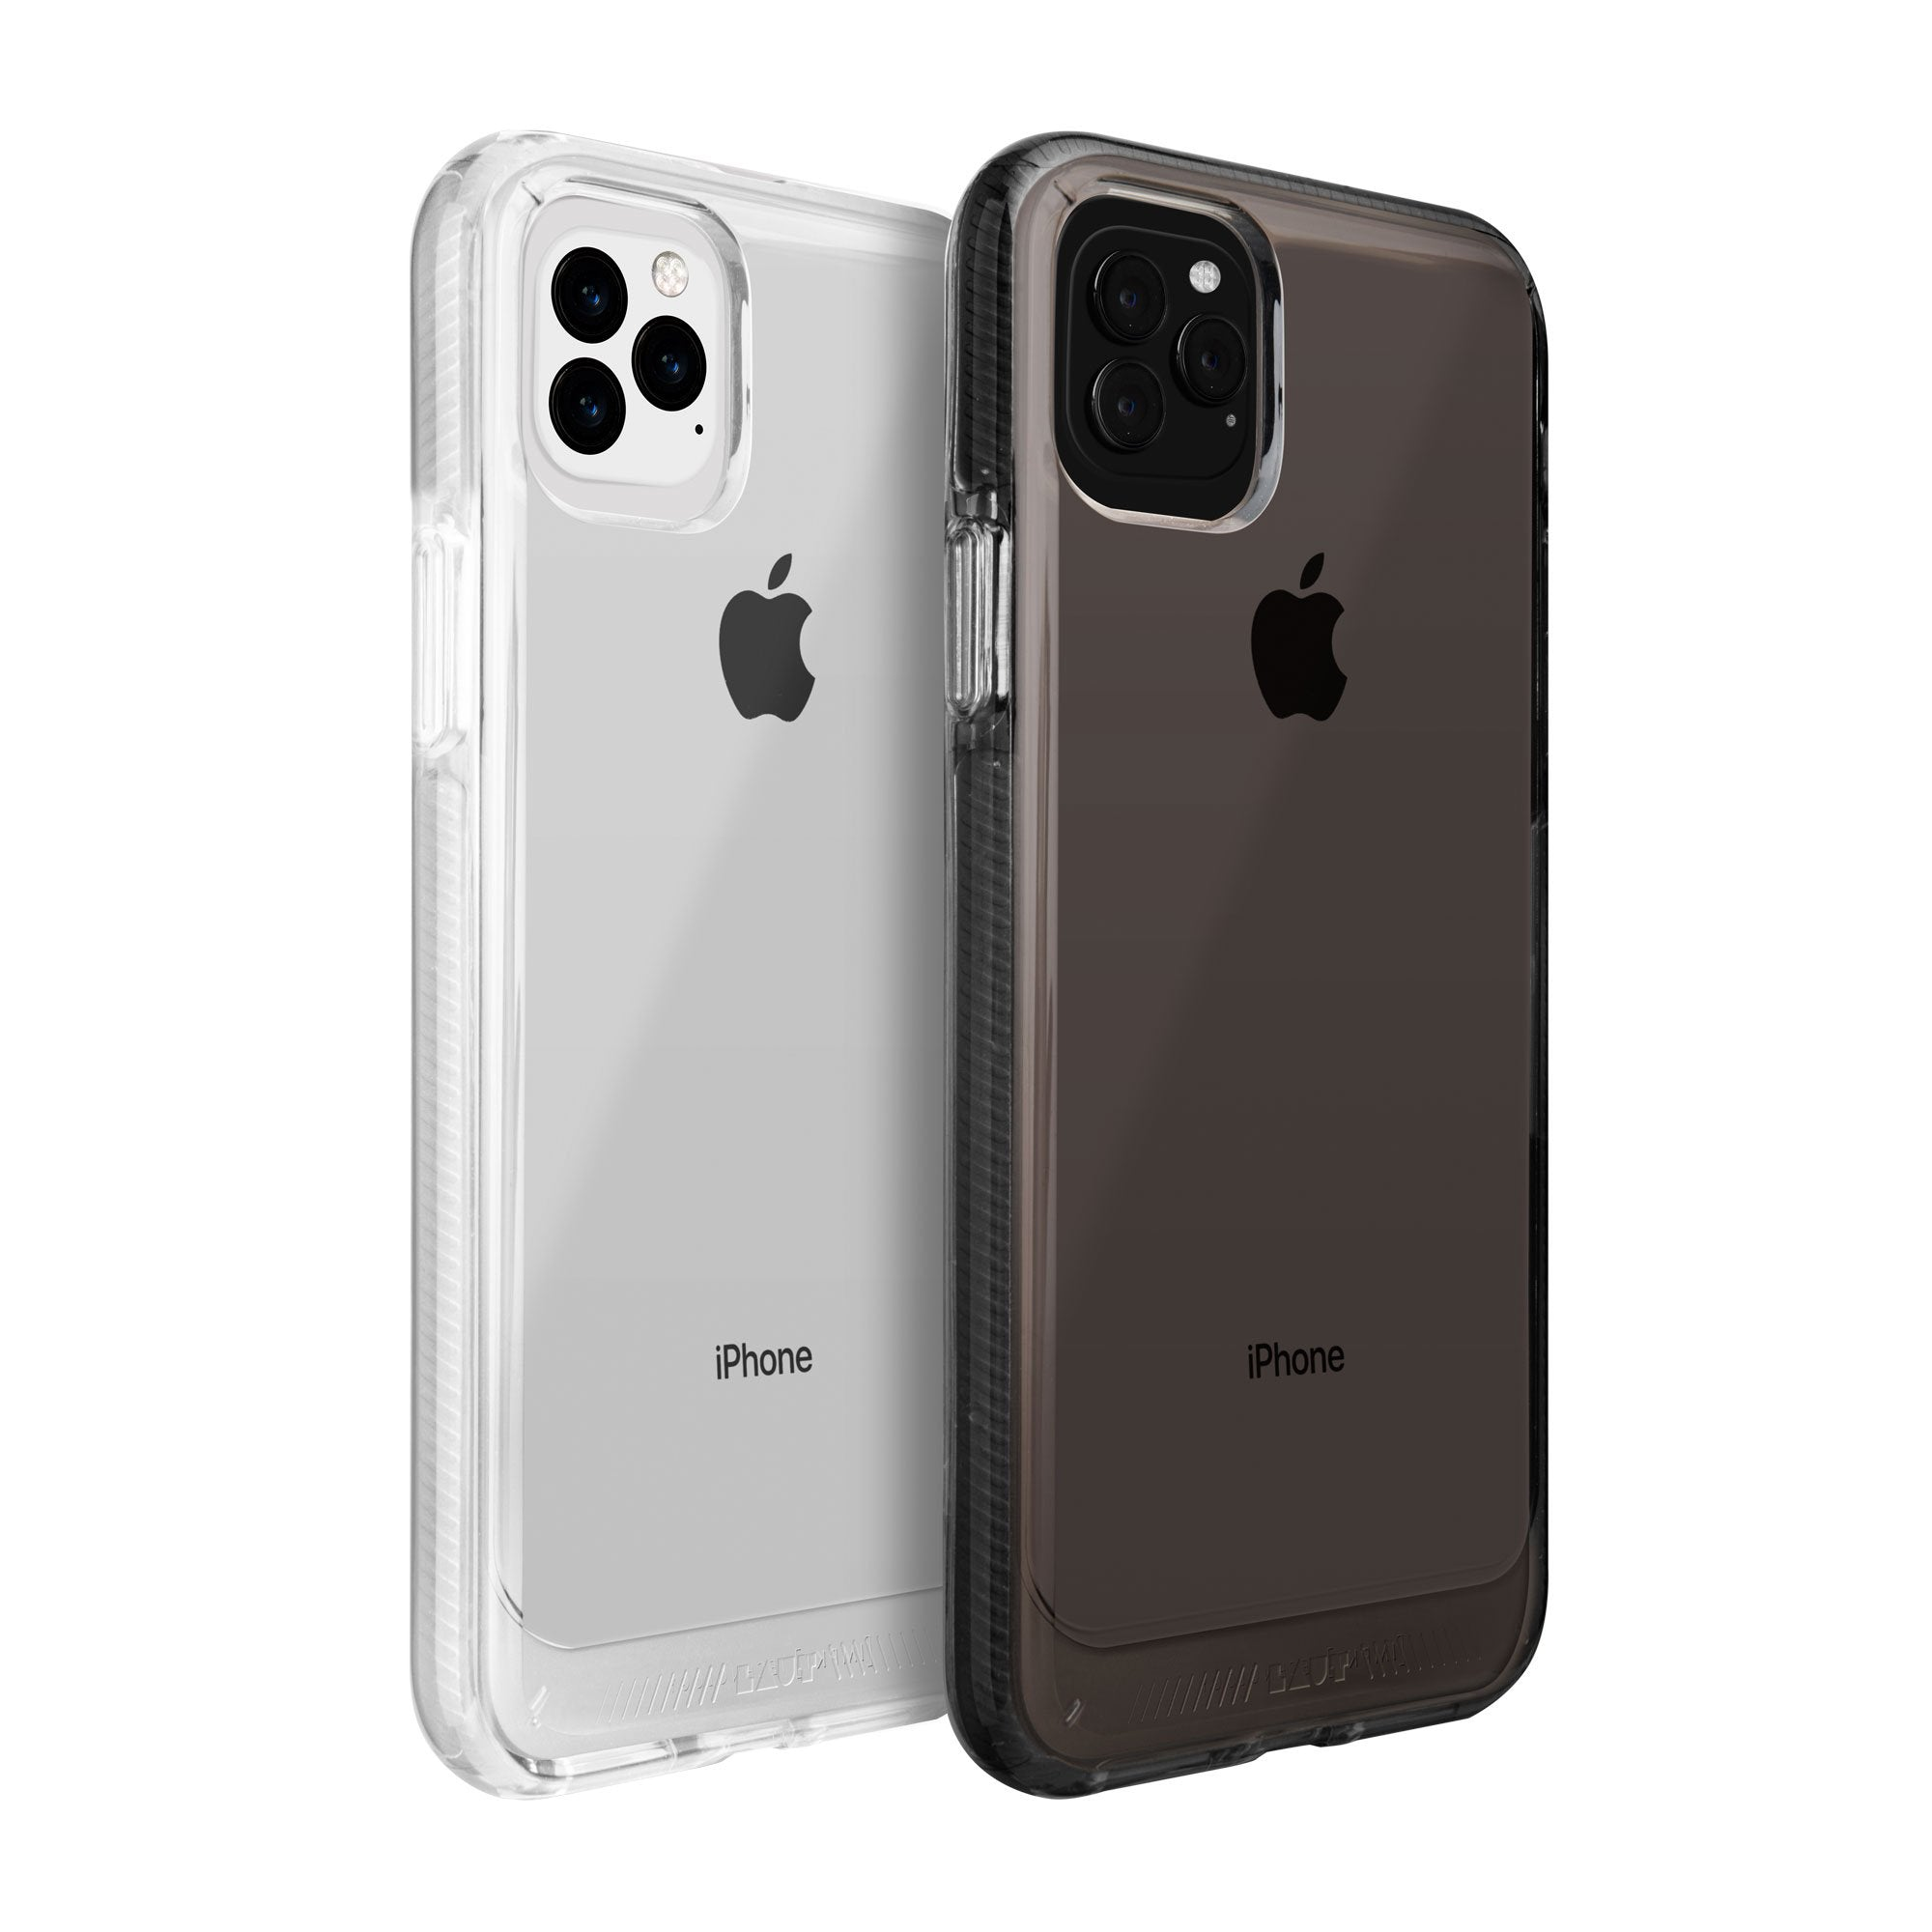 LAUT-FLURO CRYSTAL for iPhone 11 Series-Case-iPhone 11 / iPhone 11 Pro / iPhone 11 Pro Max